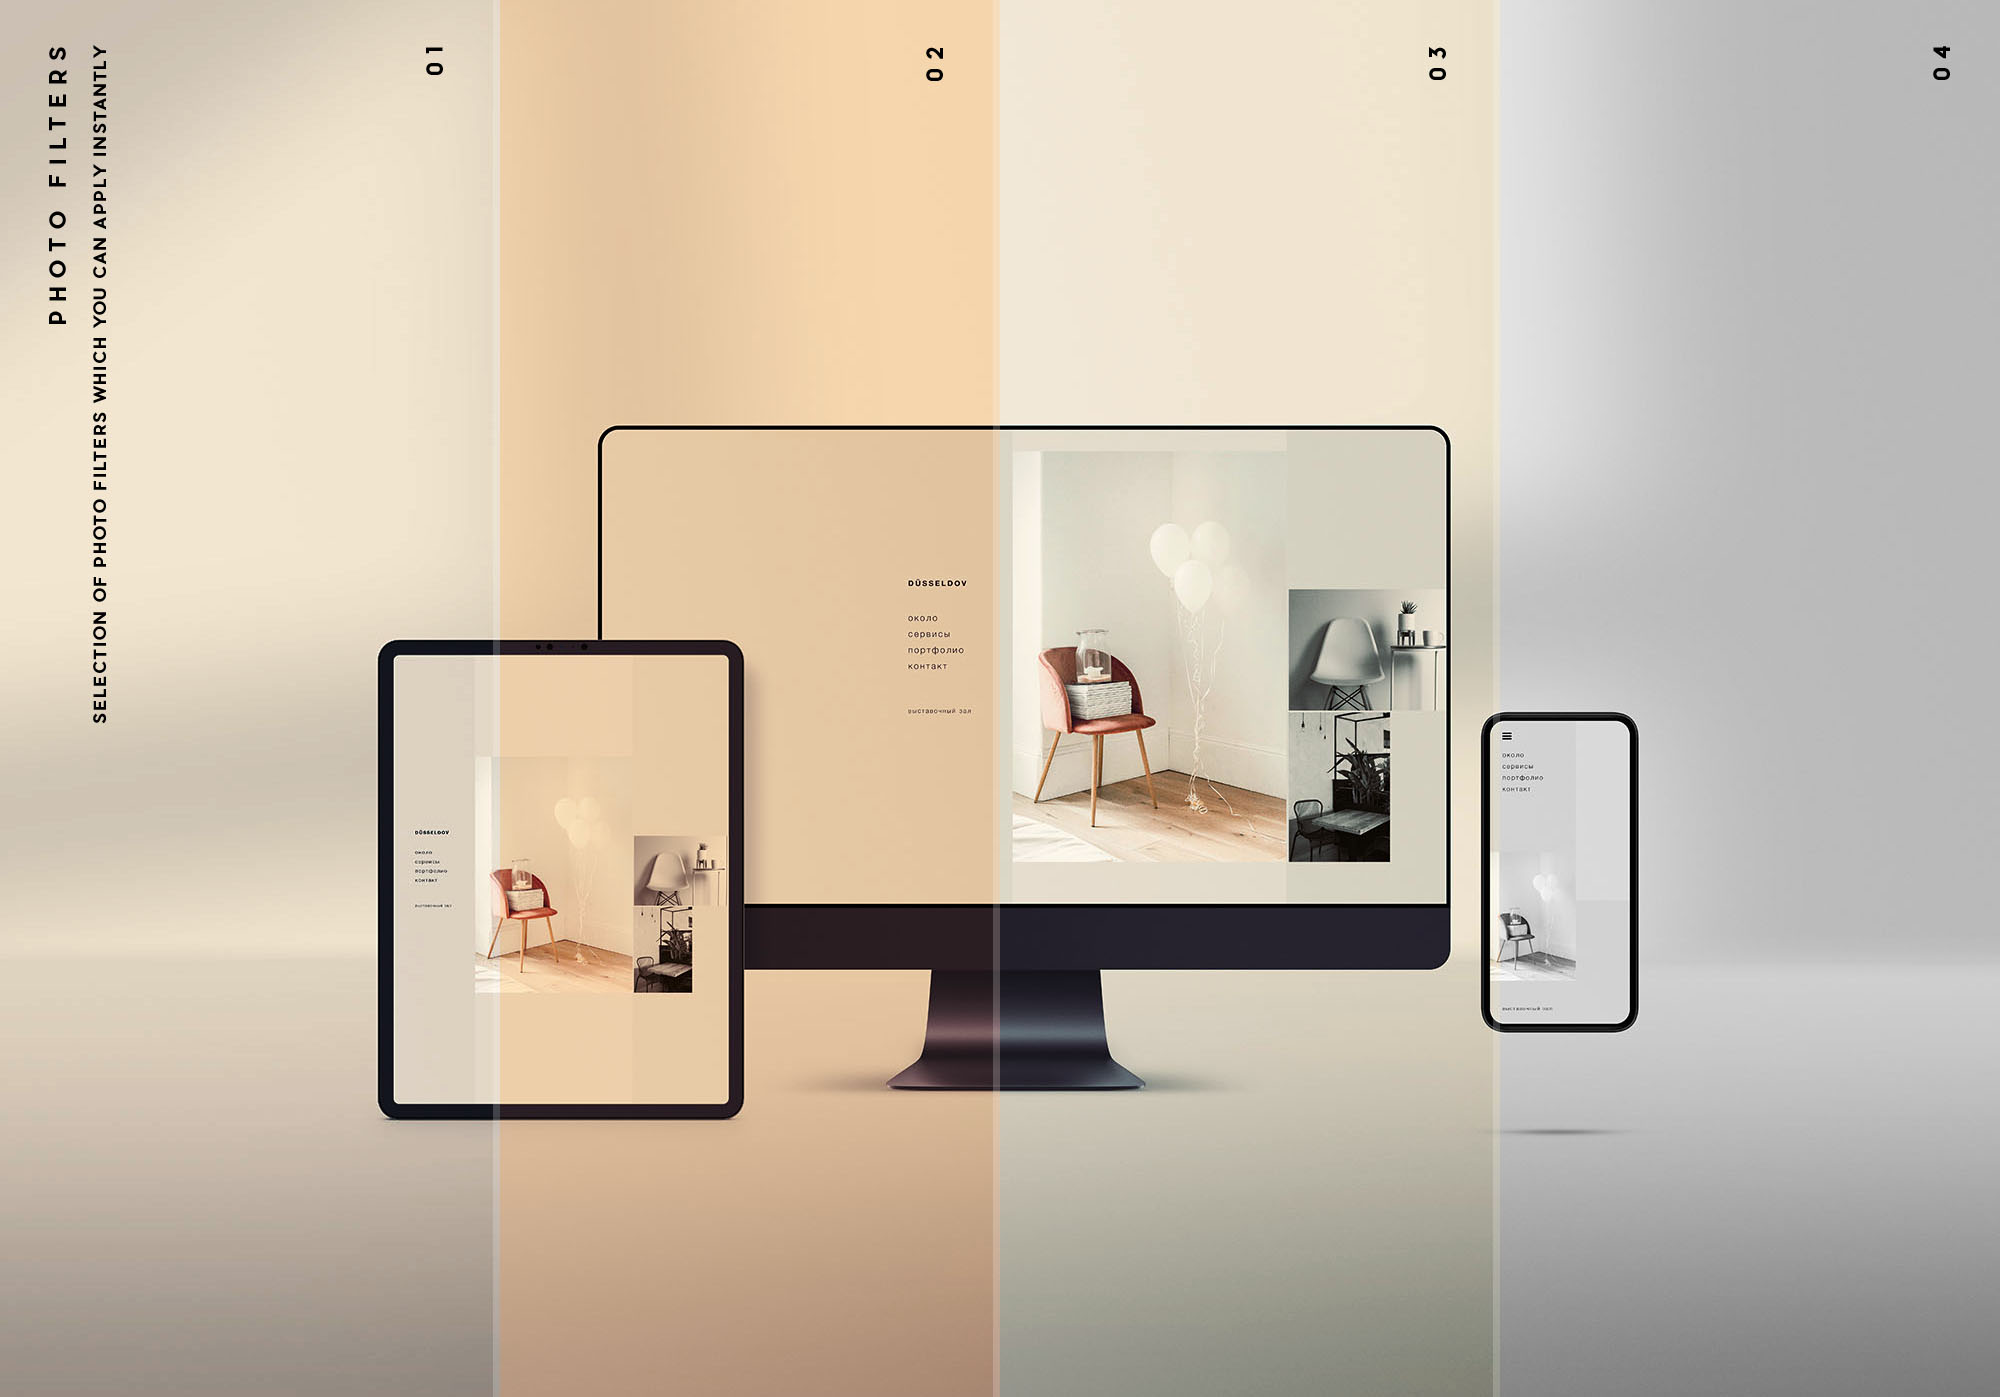 Responsive Device Mockup Filters